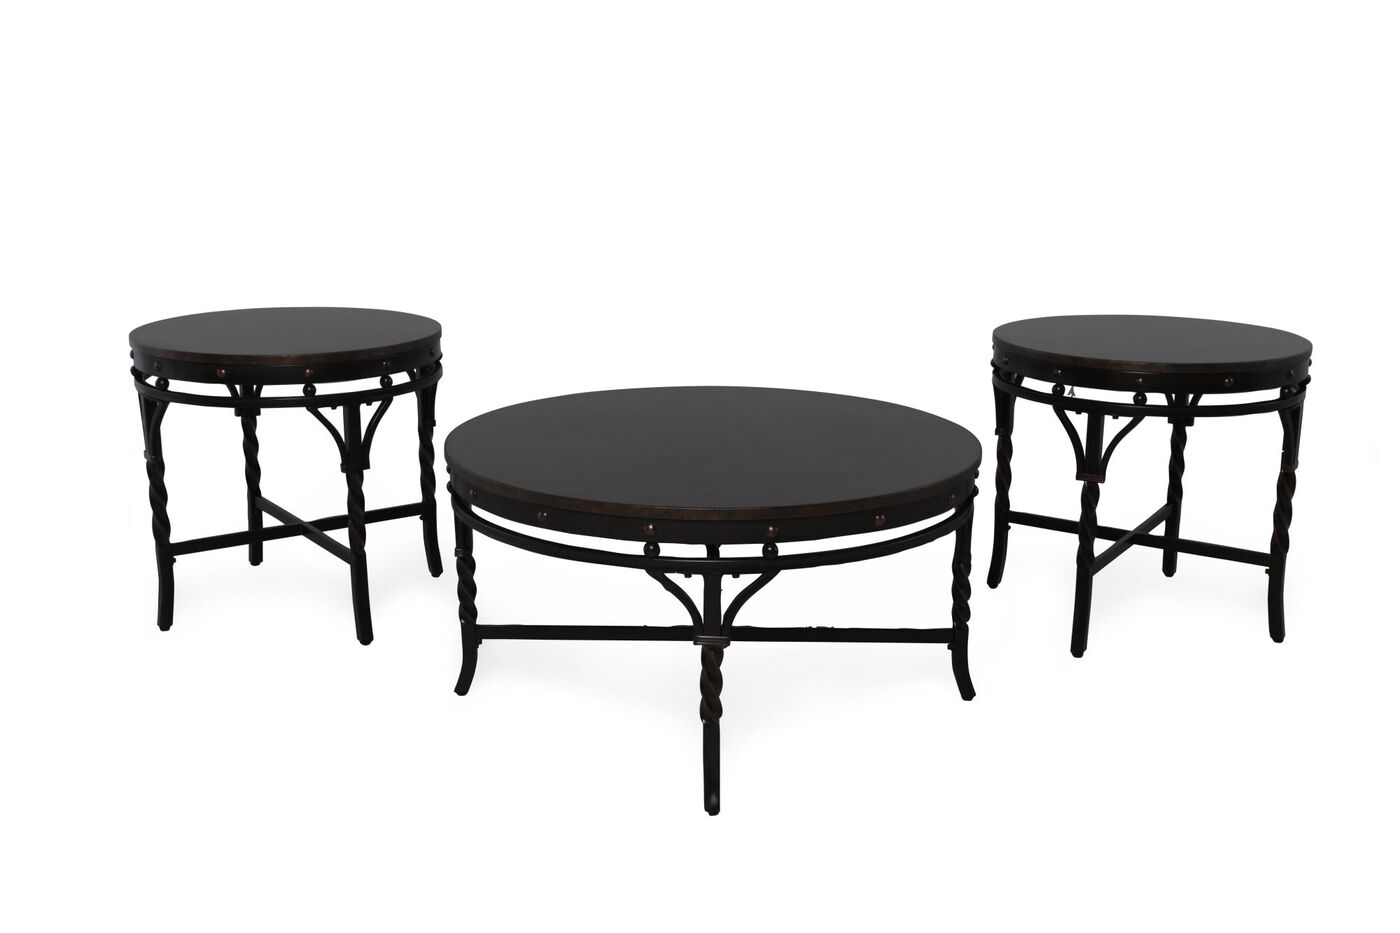 Three Piece Nailhead Accented Contemporary Coffee Table Set In Dark Espresso Mathis Brothers